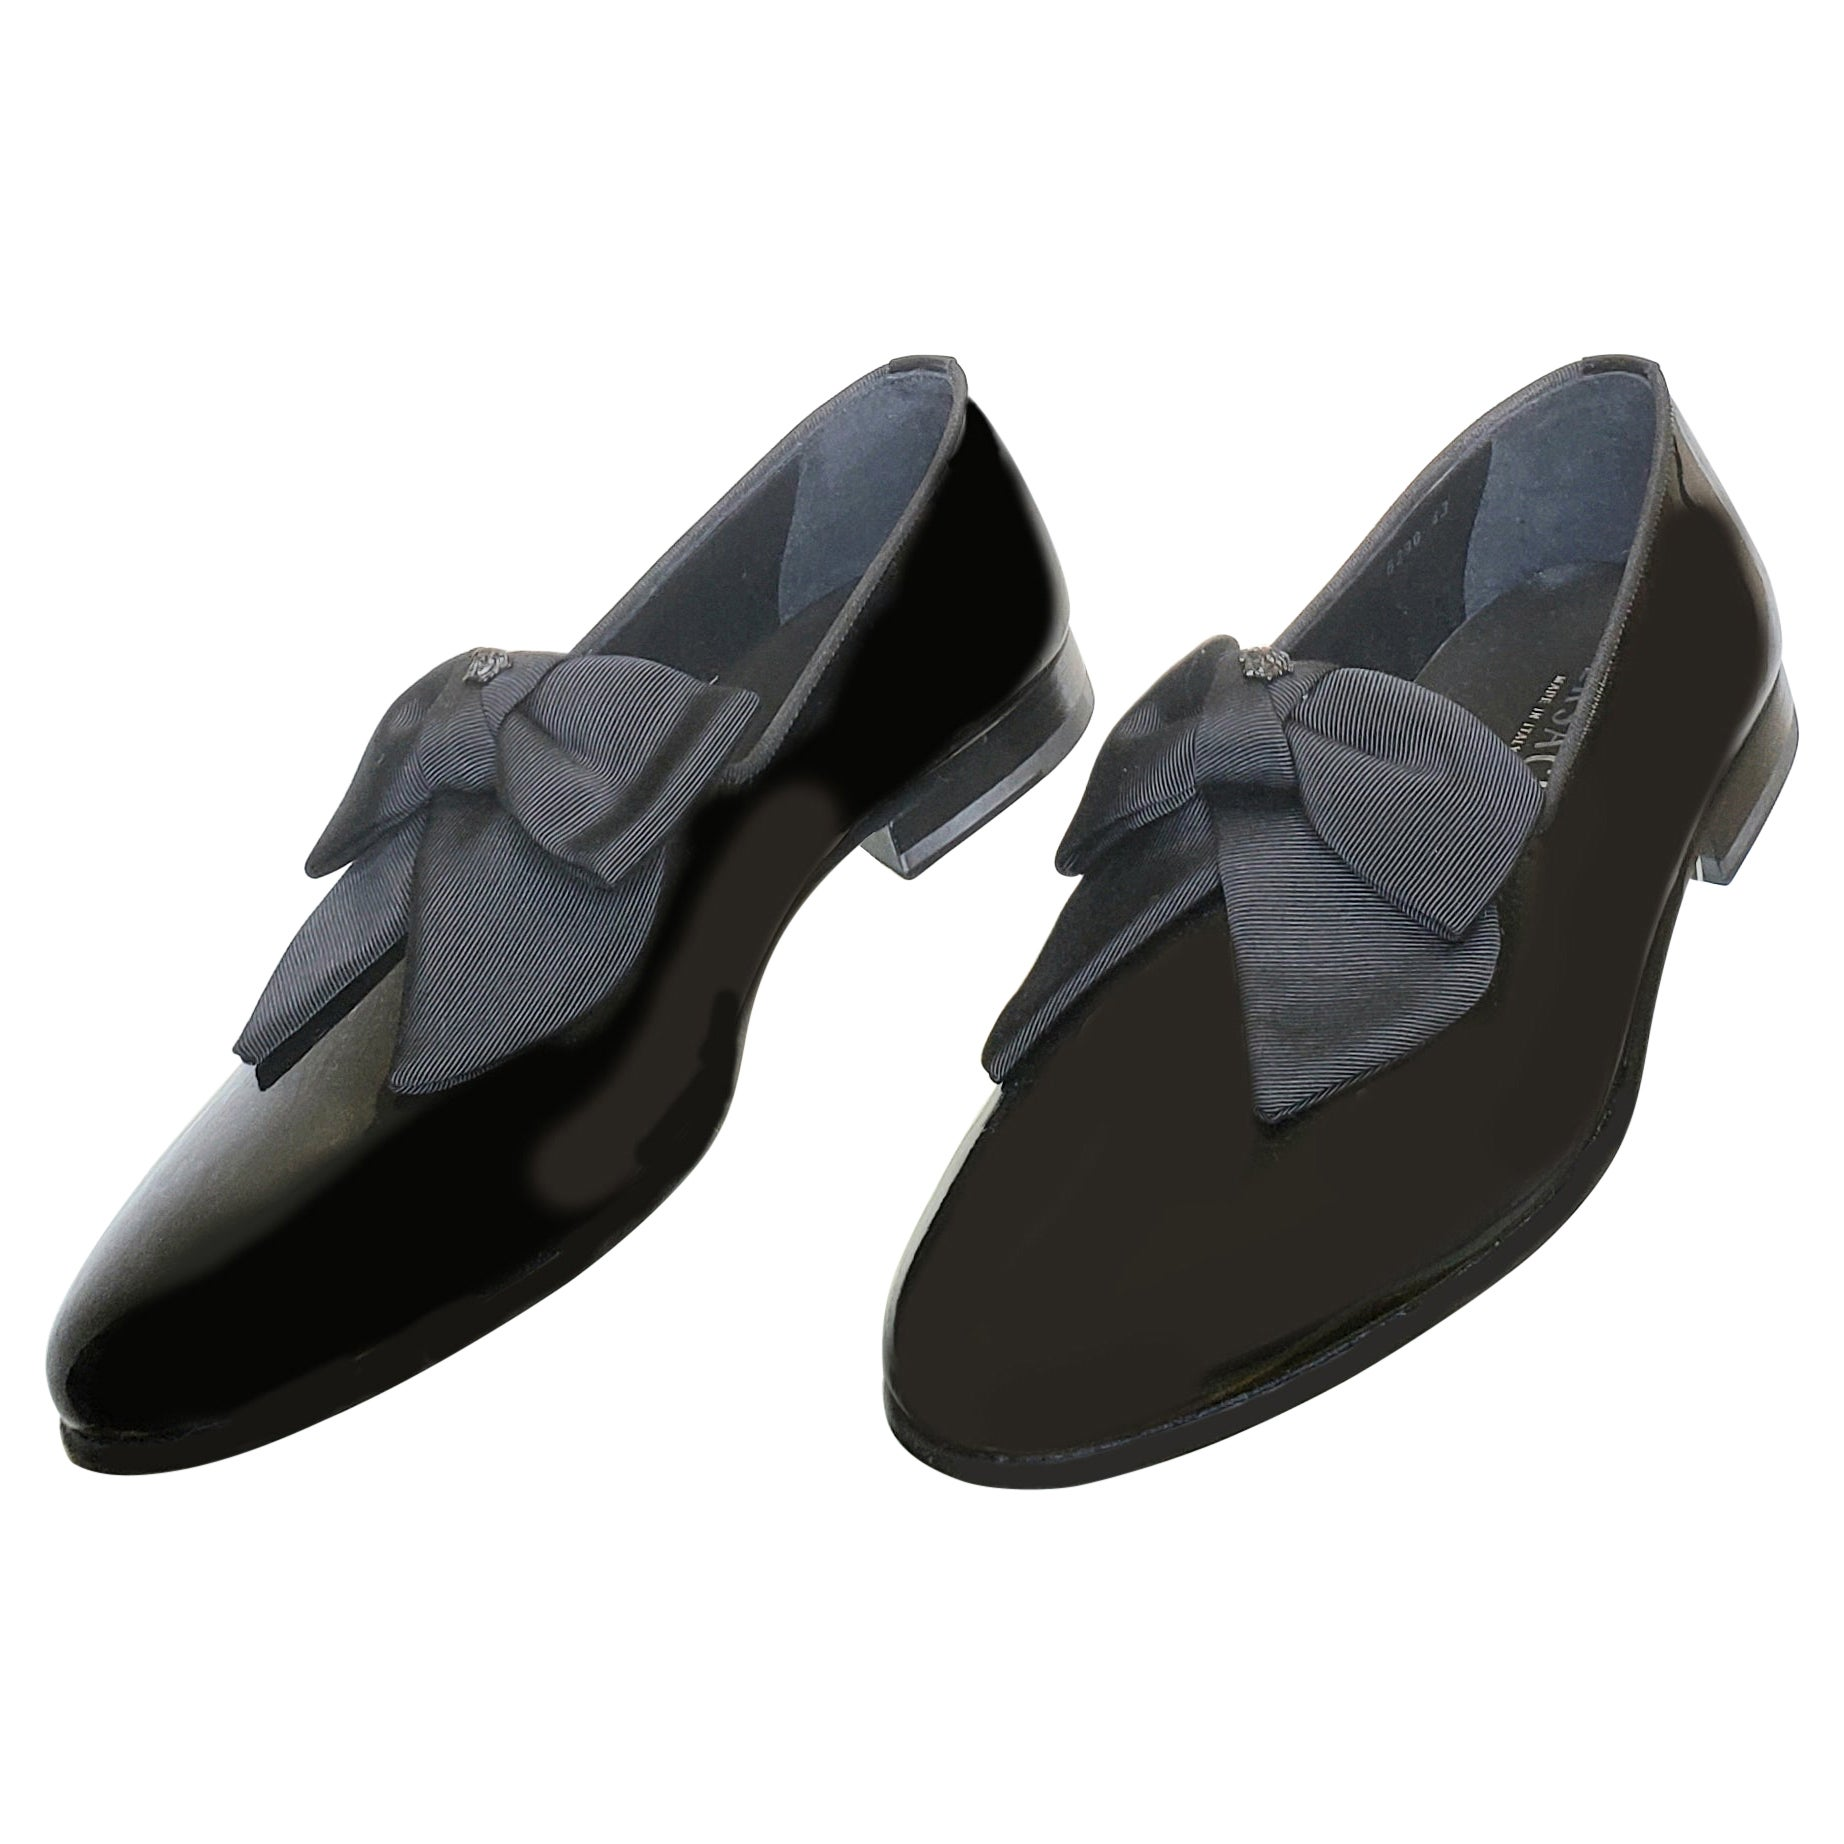 VERSACE BLACK PATENT LEATHER LOAFER Shoes 43 - 10